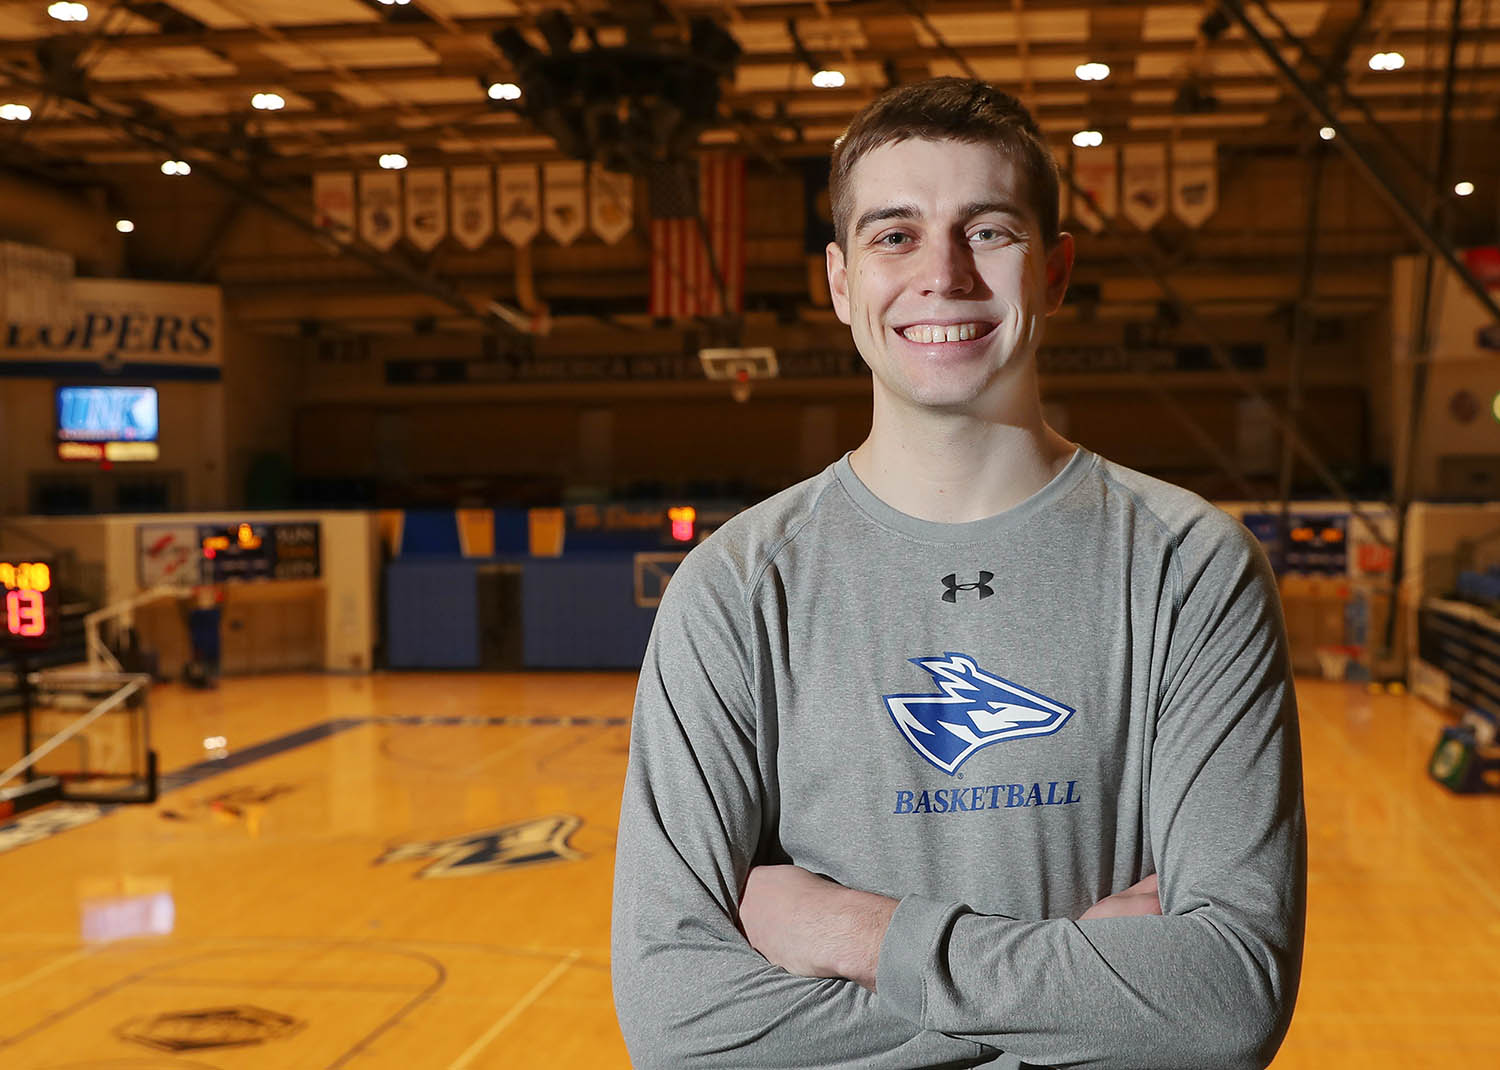 Morgan Soucie, a forward on the UNK men's basketball team, comes from an athletic family. His father Darren played basketball for UNK from 1984-87 and his sister Tayler was an All-Big 12 volleyball player at the University of Kansas, where brother Brendan competed on the cross country and track and field teams.